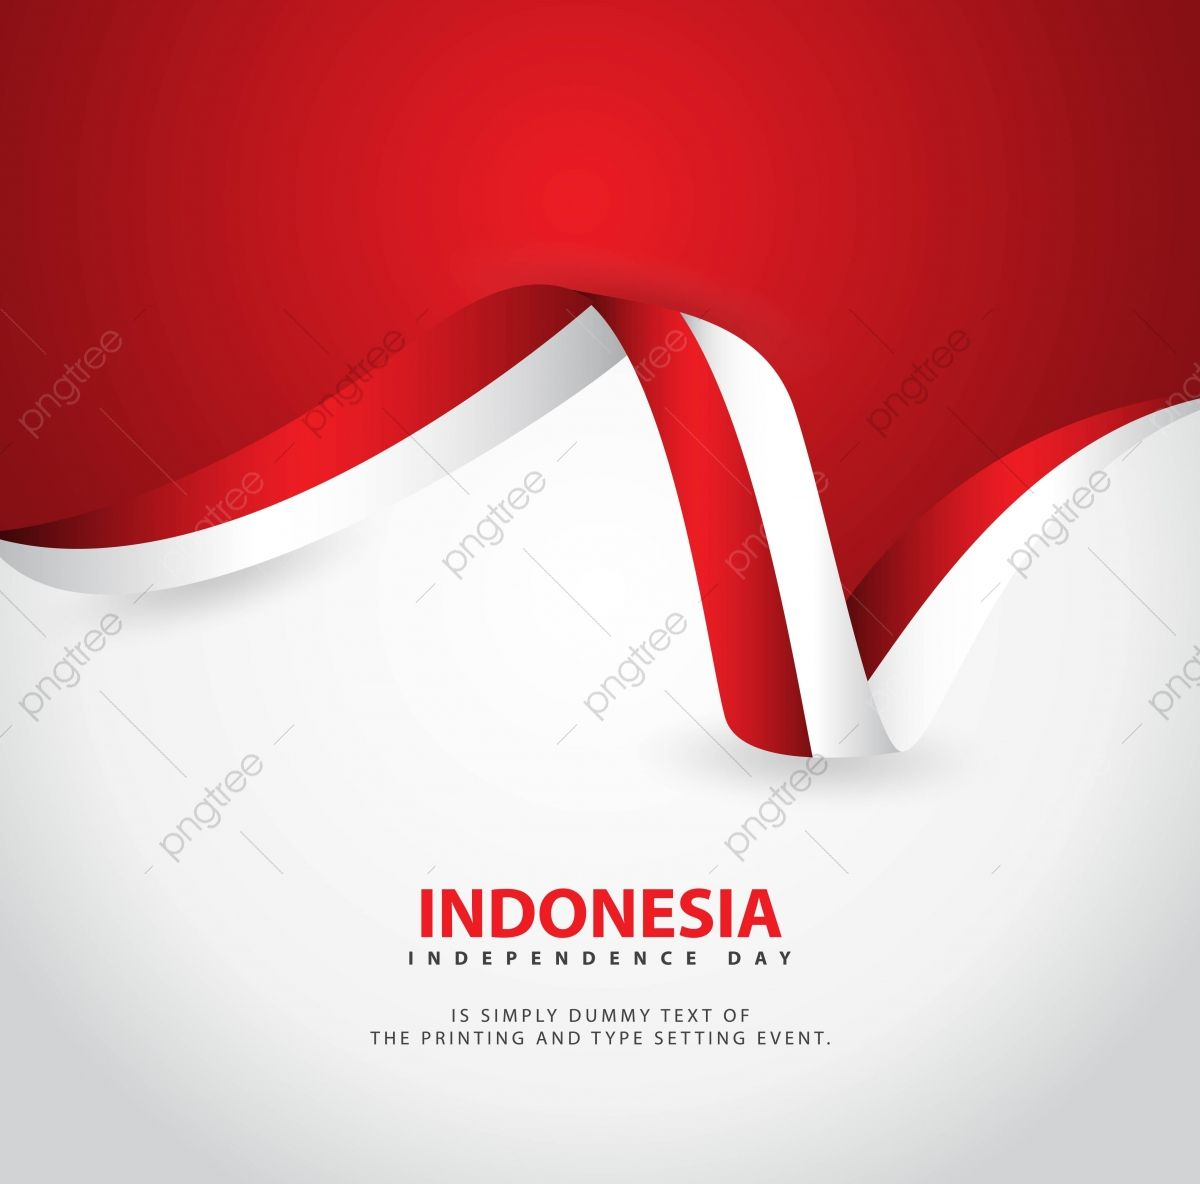 Download This Indonesia Independence Day Vector Template Design Illustration Indonesia Independence Ba Background Design Illustration Design Template Design